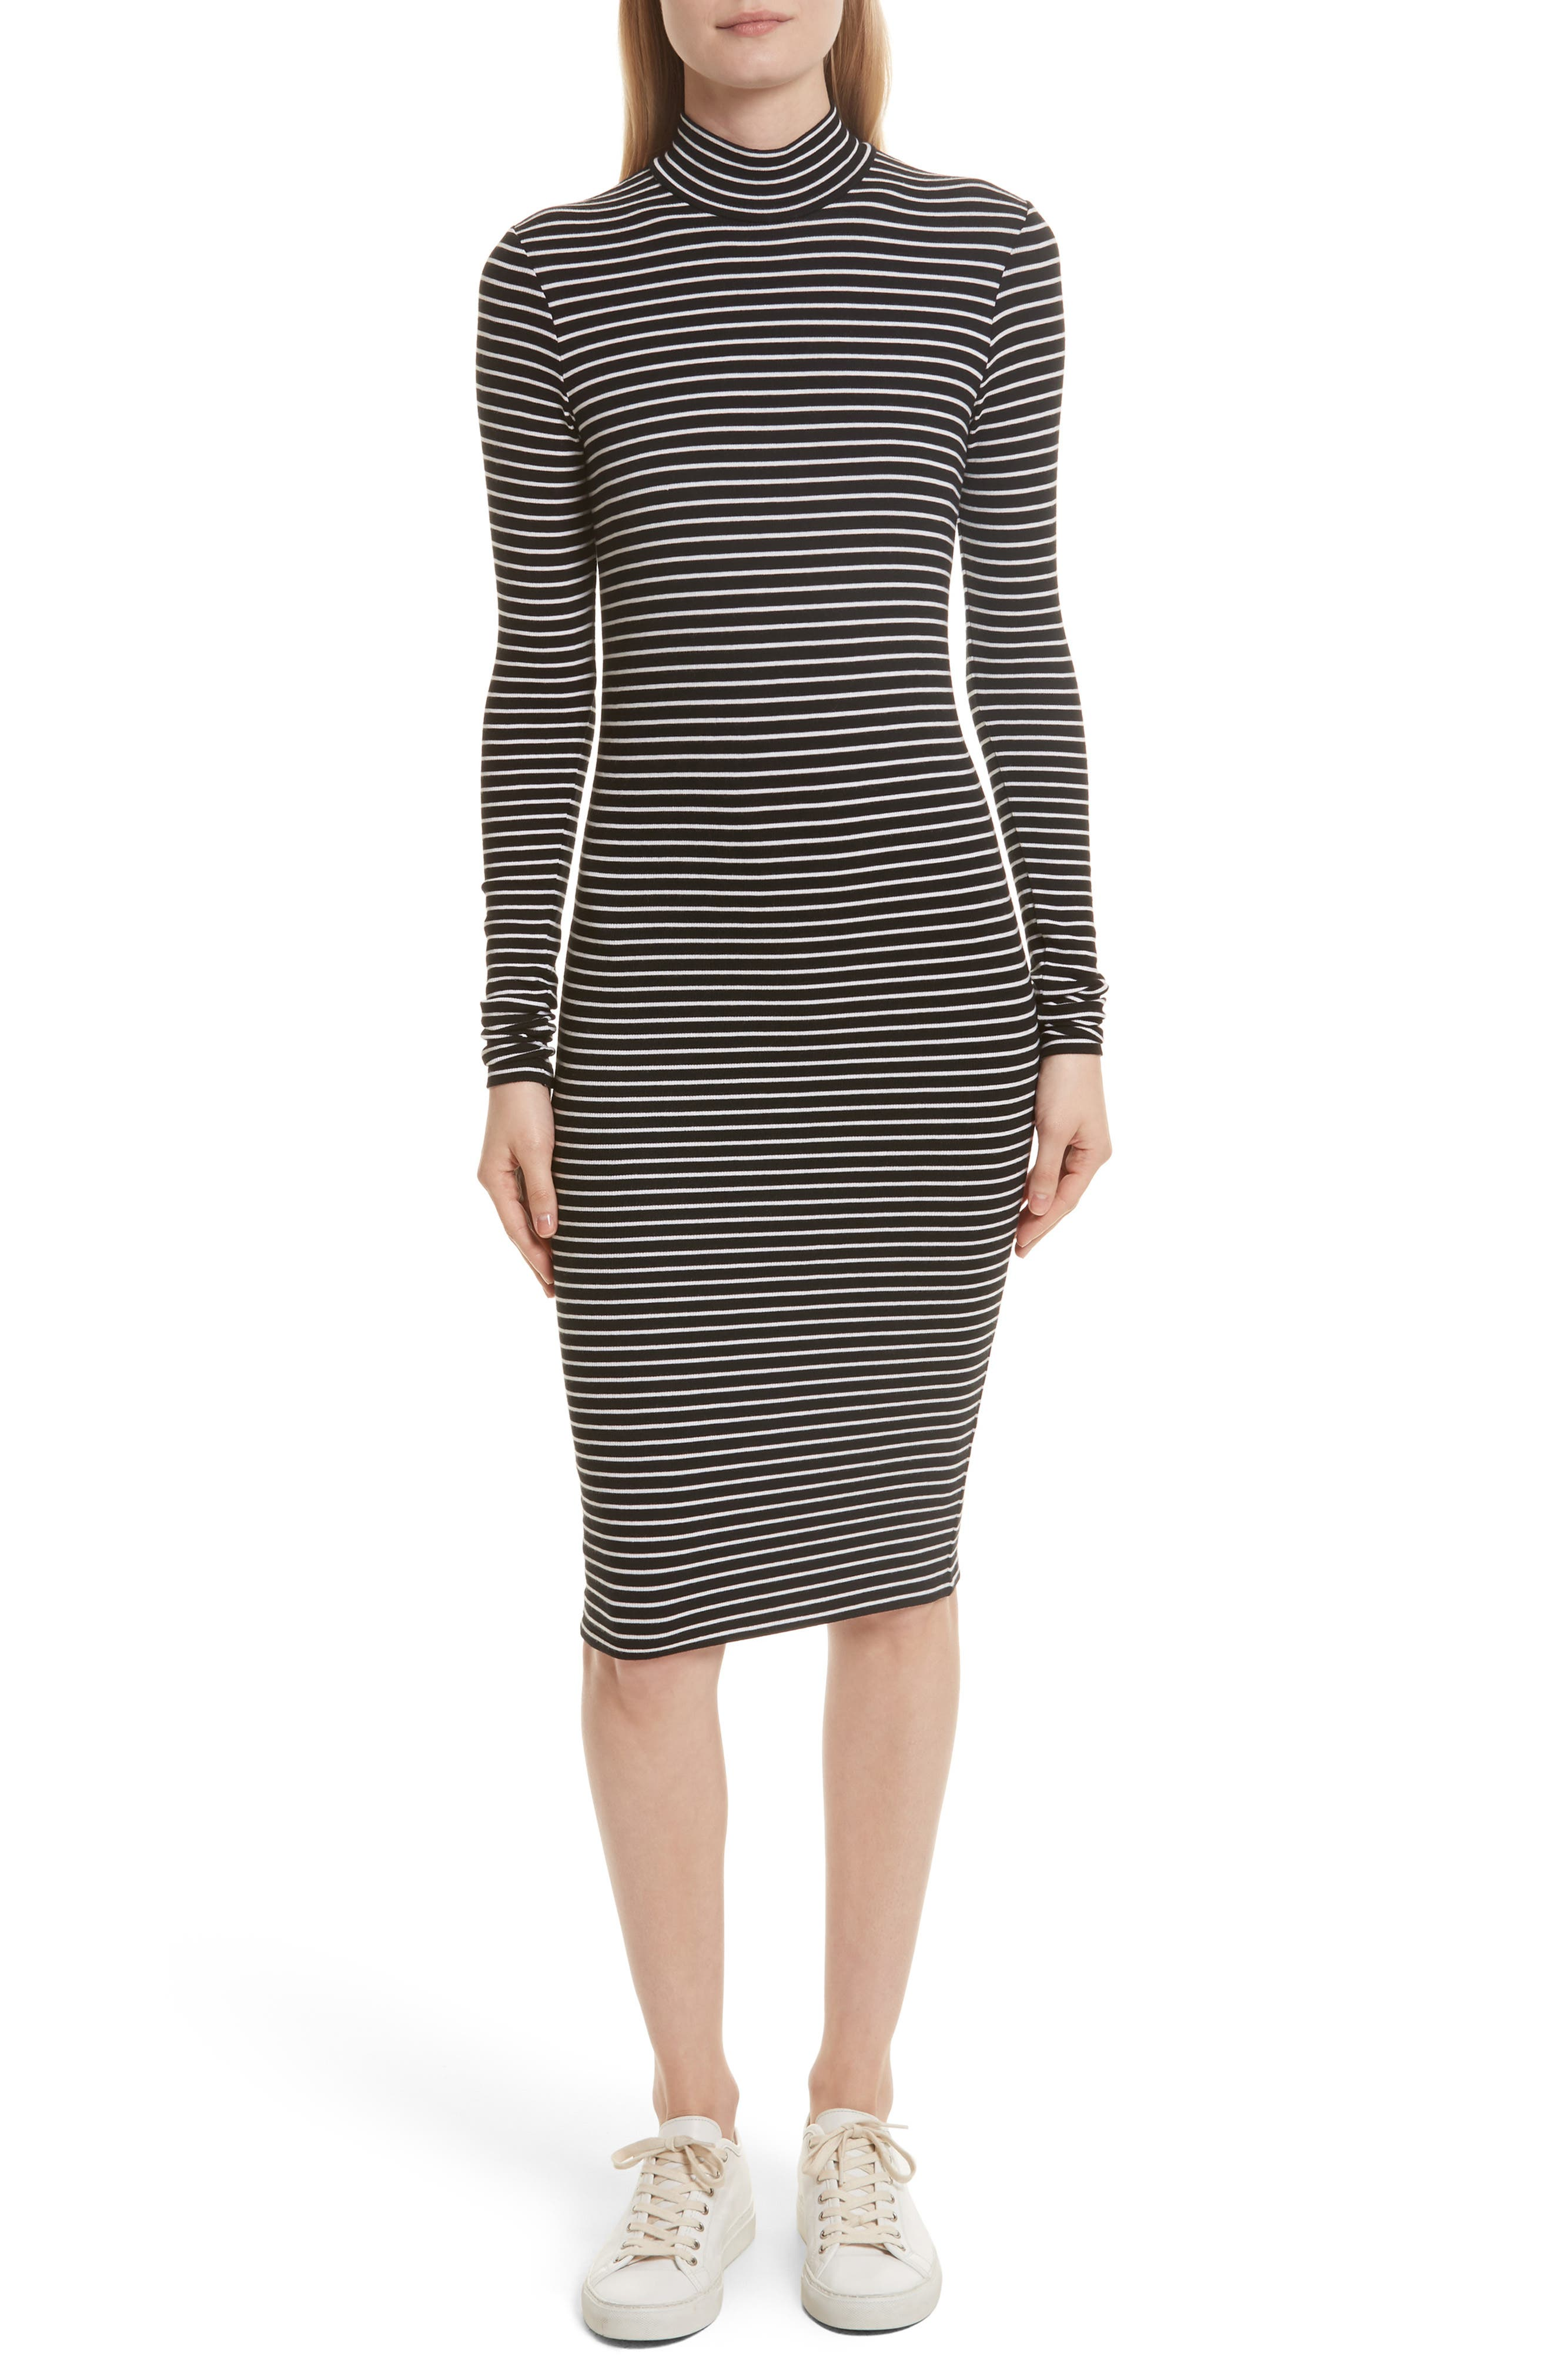 Alternate Image 1 Selected - ATM Anthony Thomas Melillo Stripe Rib Jersey Dress (Nordstrom Exclusive)